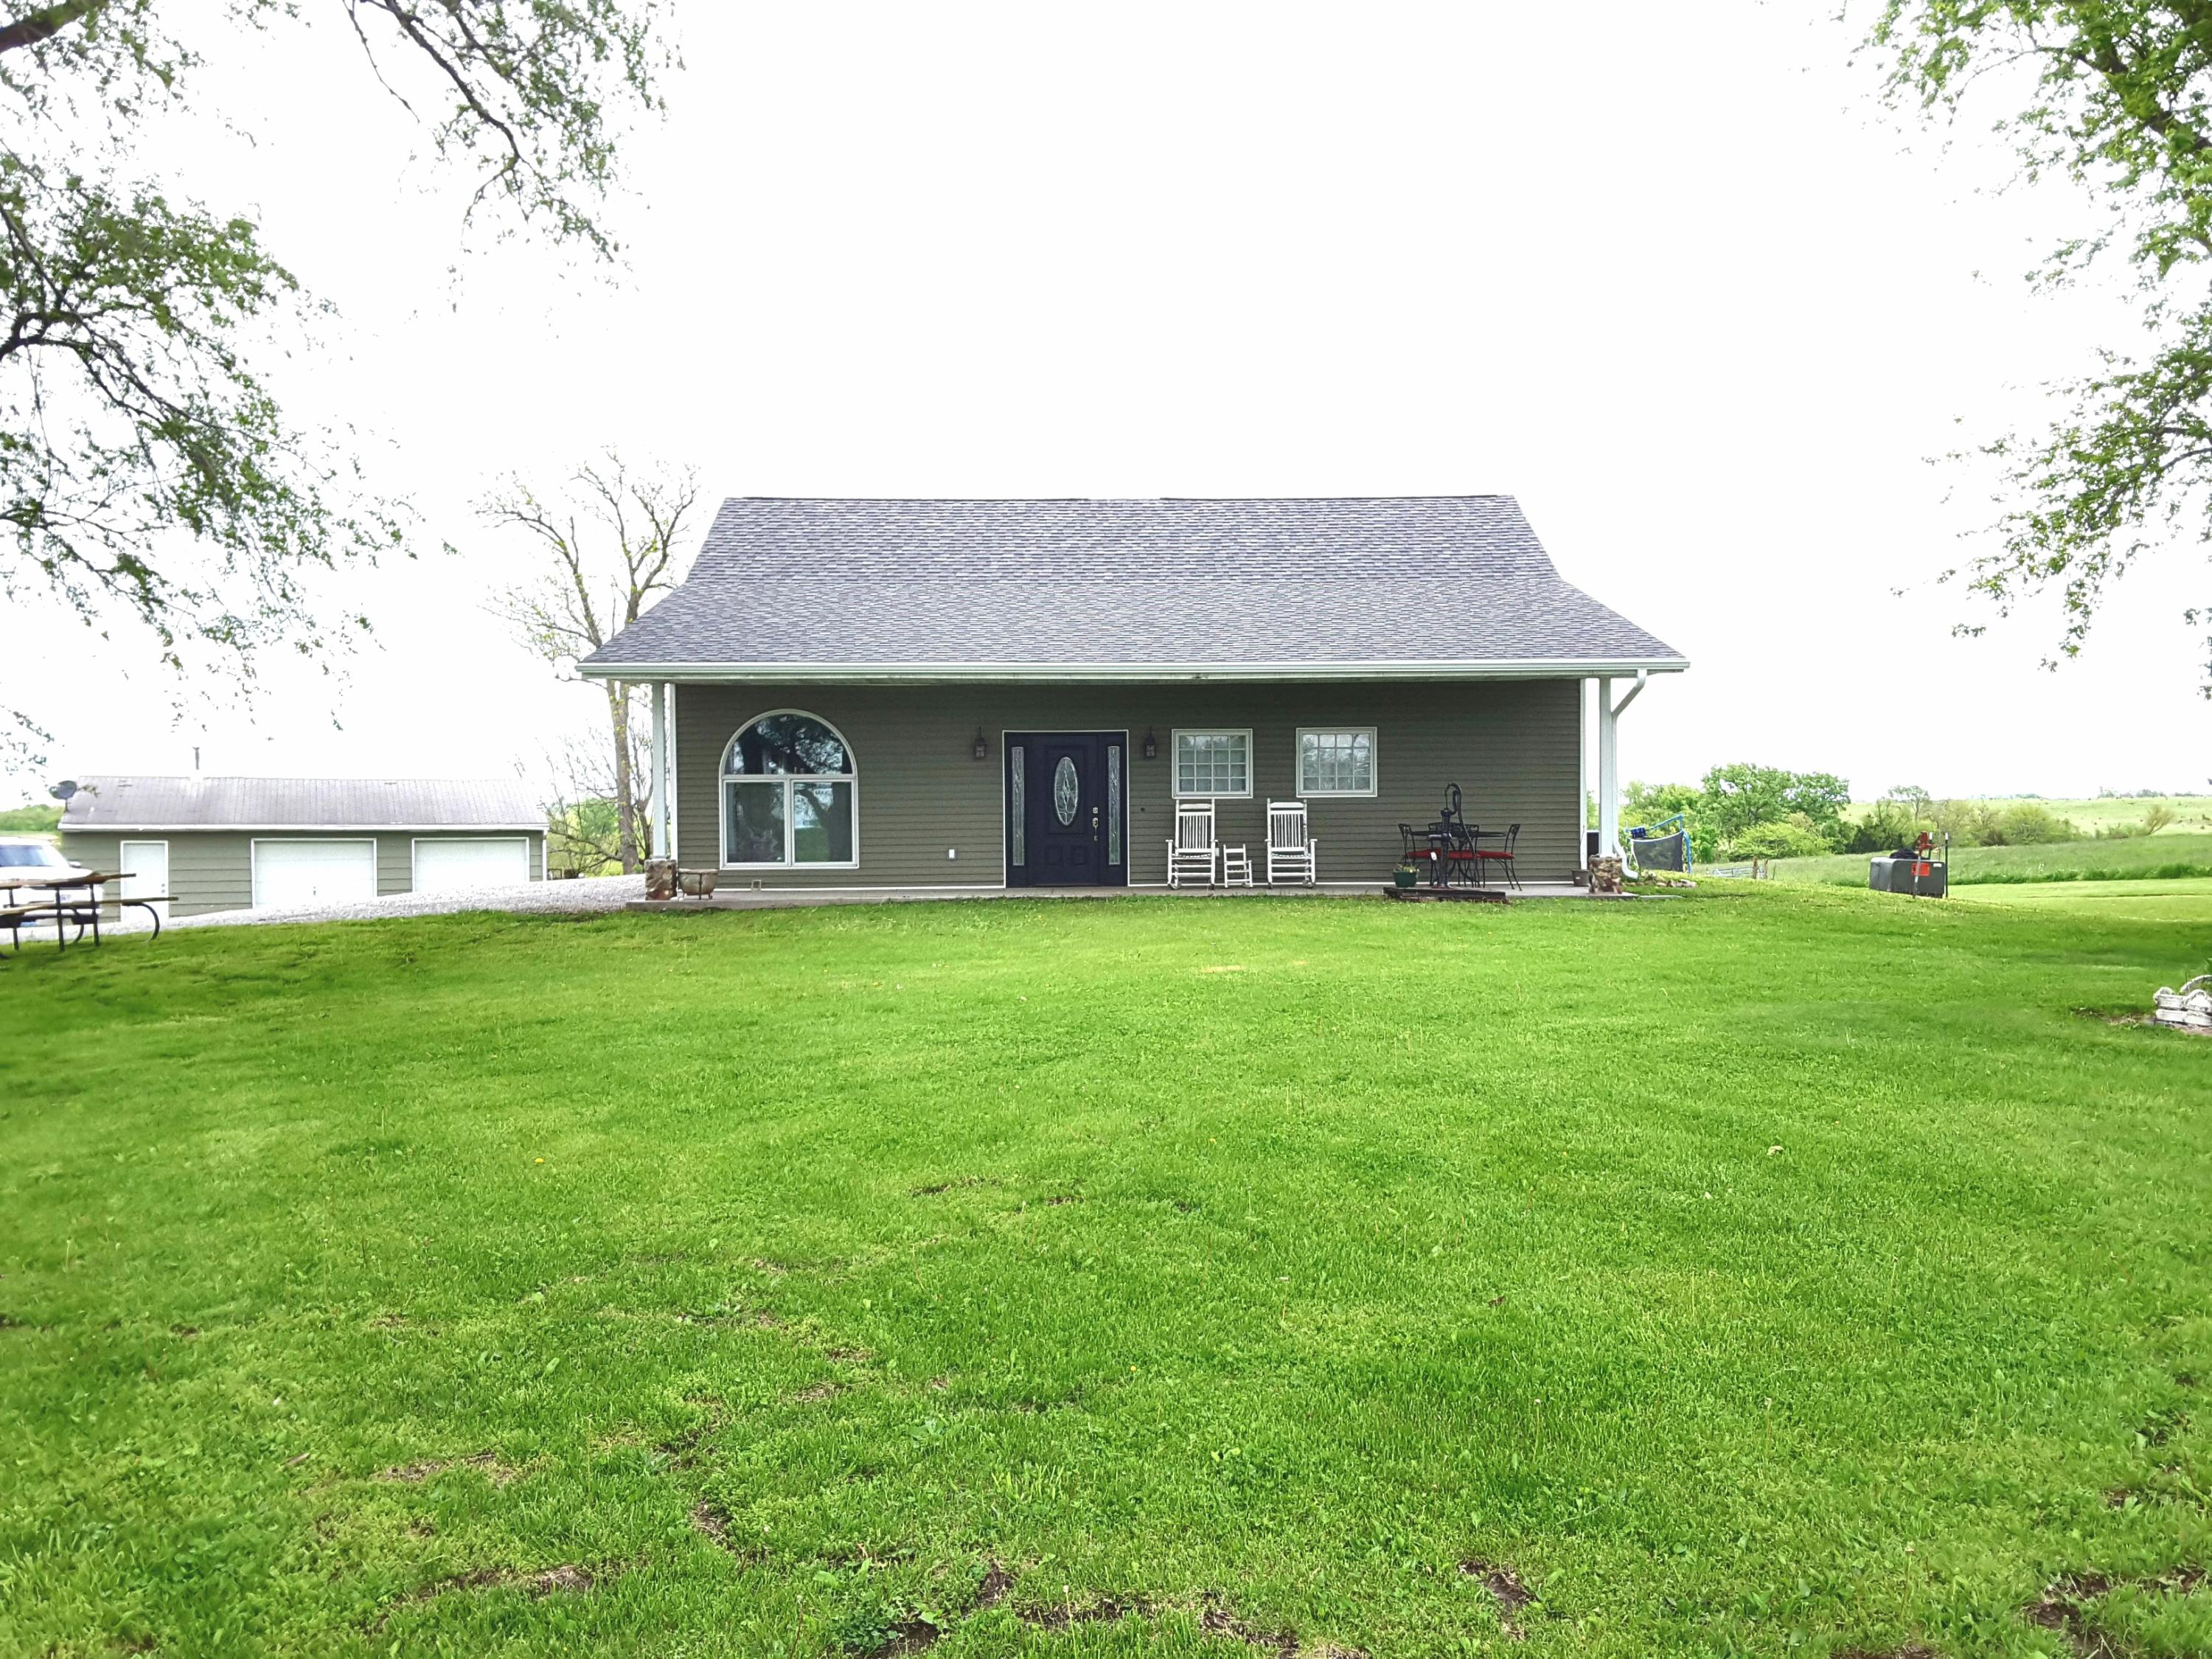 34561 STATE HWY 246, Hopkins, Missouri 64461, 3 Bedrooms Bedrooms, ,2.5 BathroomsBathrooms,Residential,STATE HWY 246,4762